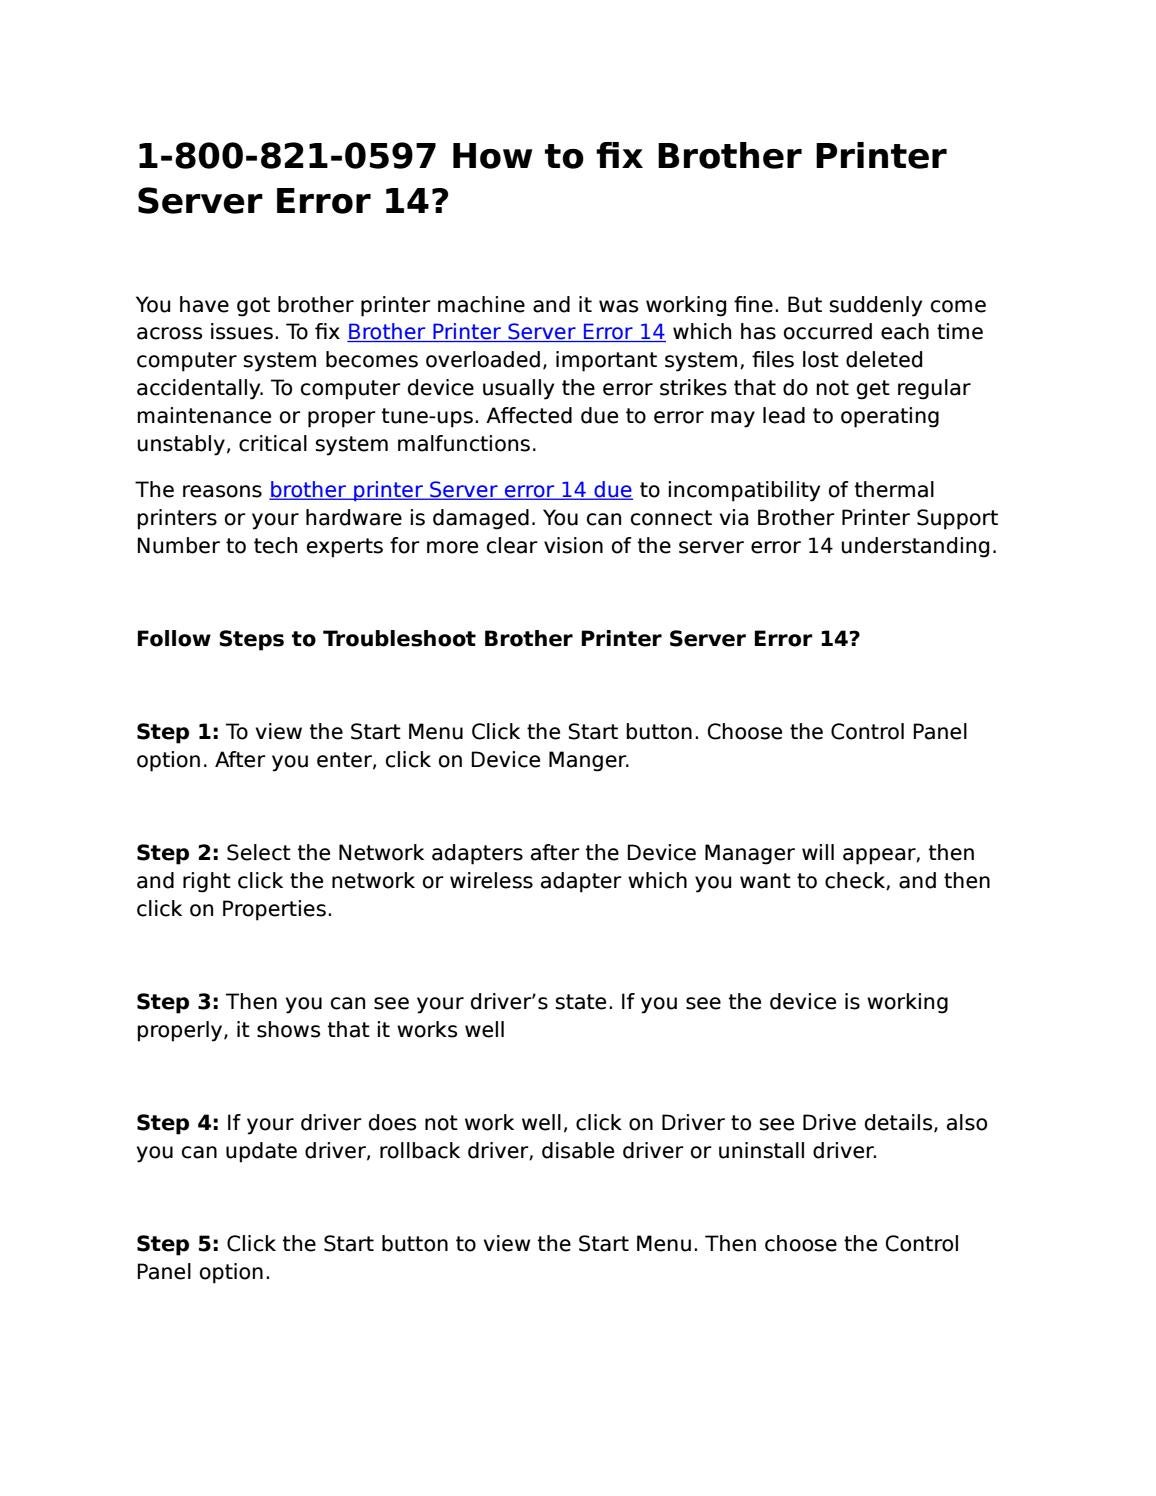 1-800-821-0597 How to fix Brother Printer Server Error 14? by